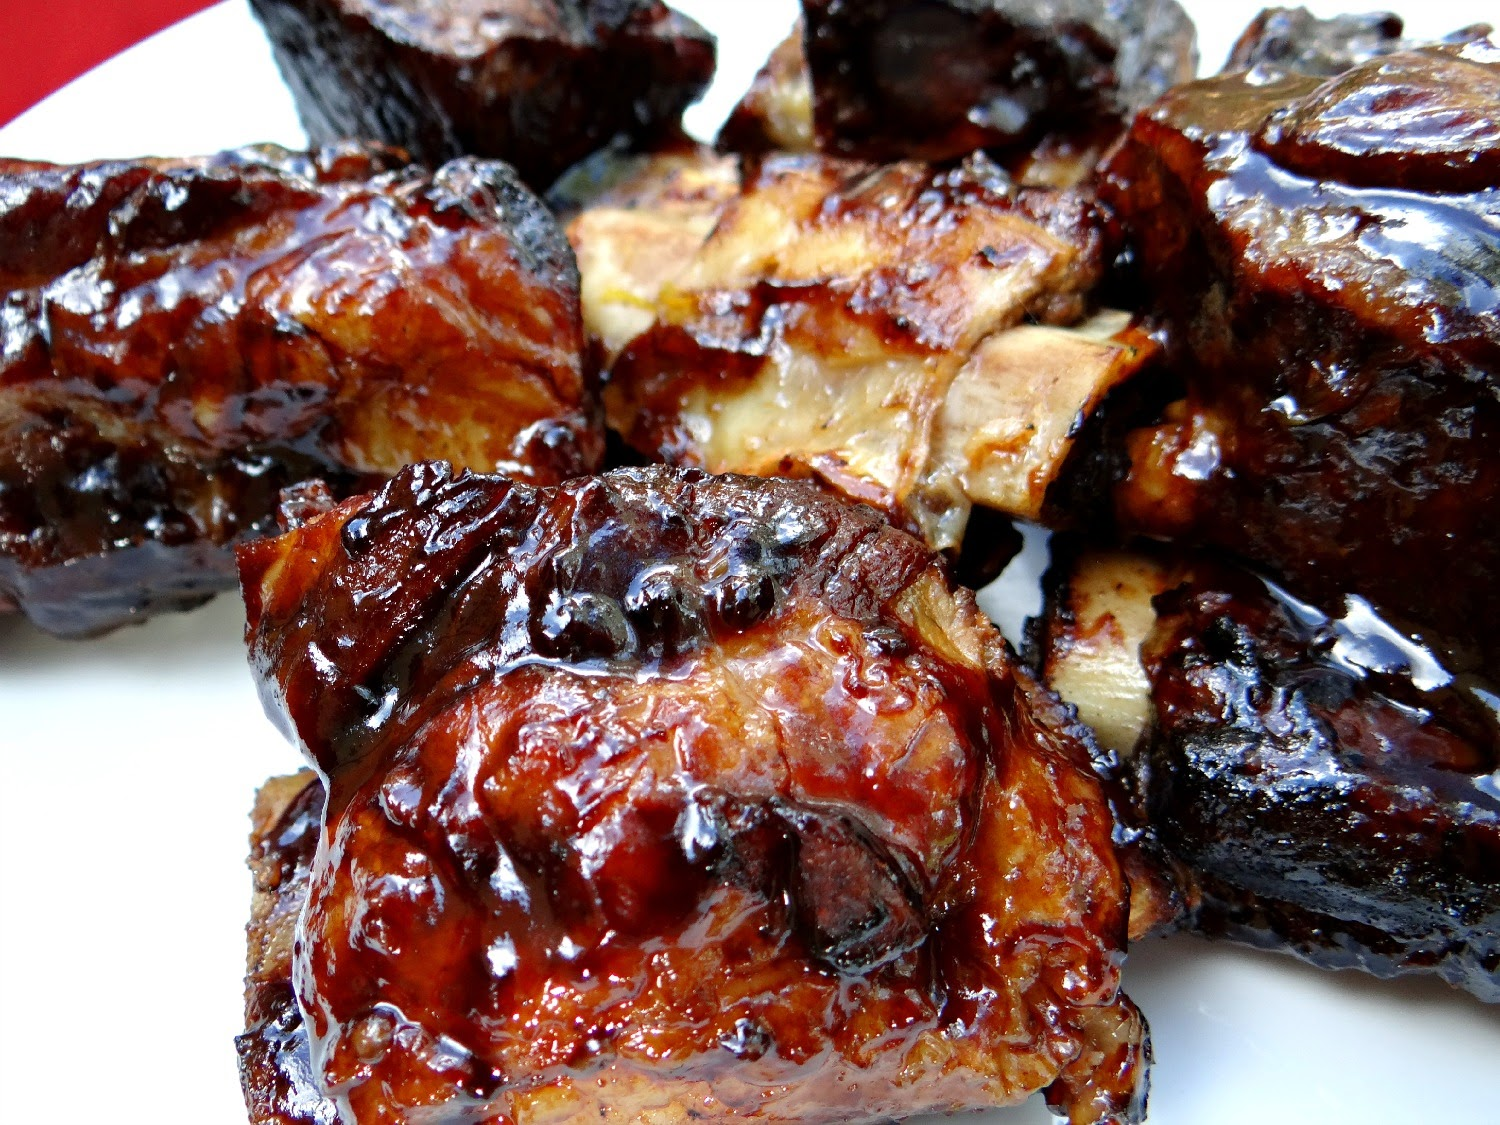 Braised and Grilled Beef Short Ribs with Sticky, Spicy Beer BBQ Sauce